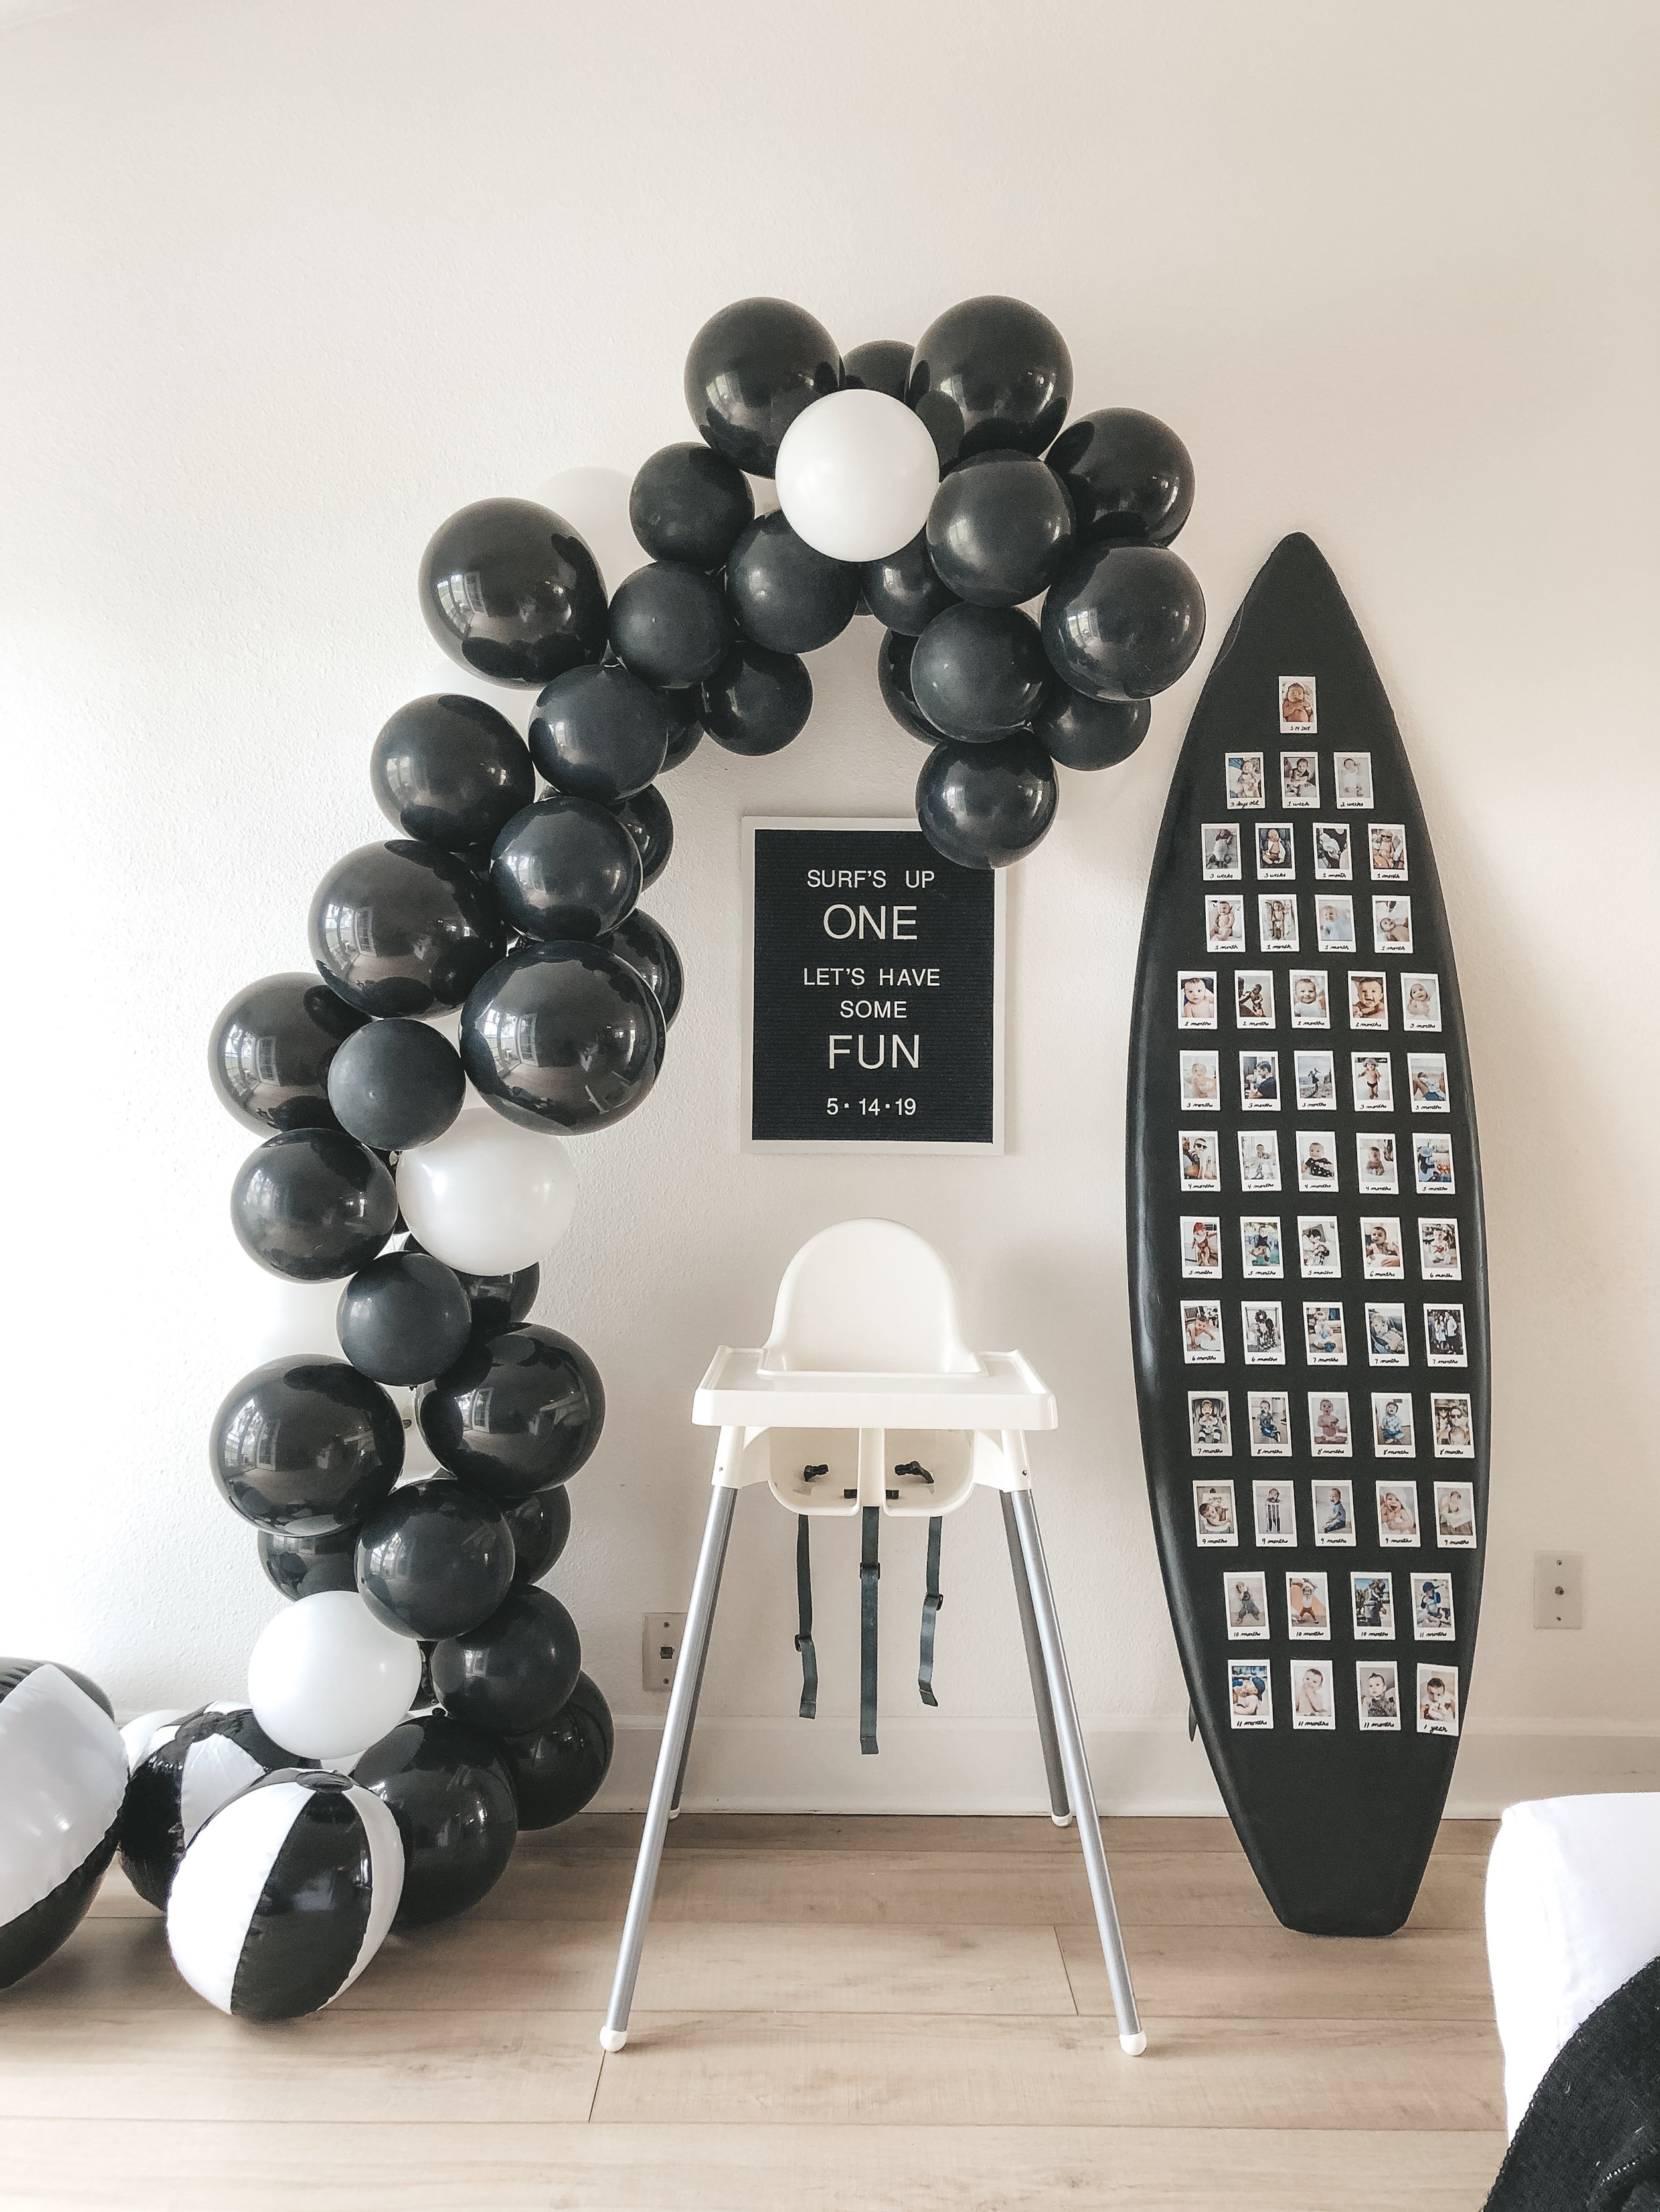 DIY BALLOON ARCH TUTORIAL TIPS TRICKS. How to make a balloon arch at home.  Inexpensive balloon arch party decor.  Surf theme first birthday party.  Surfboard with Polaroid photos of first year.  Beach ball balloon arch.